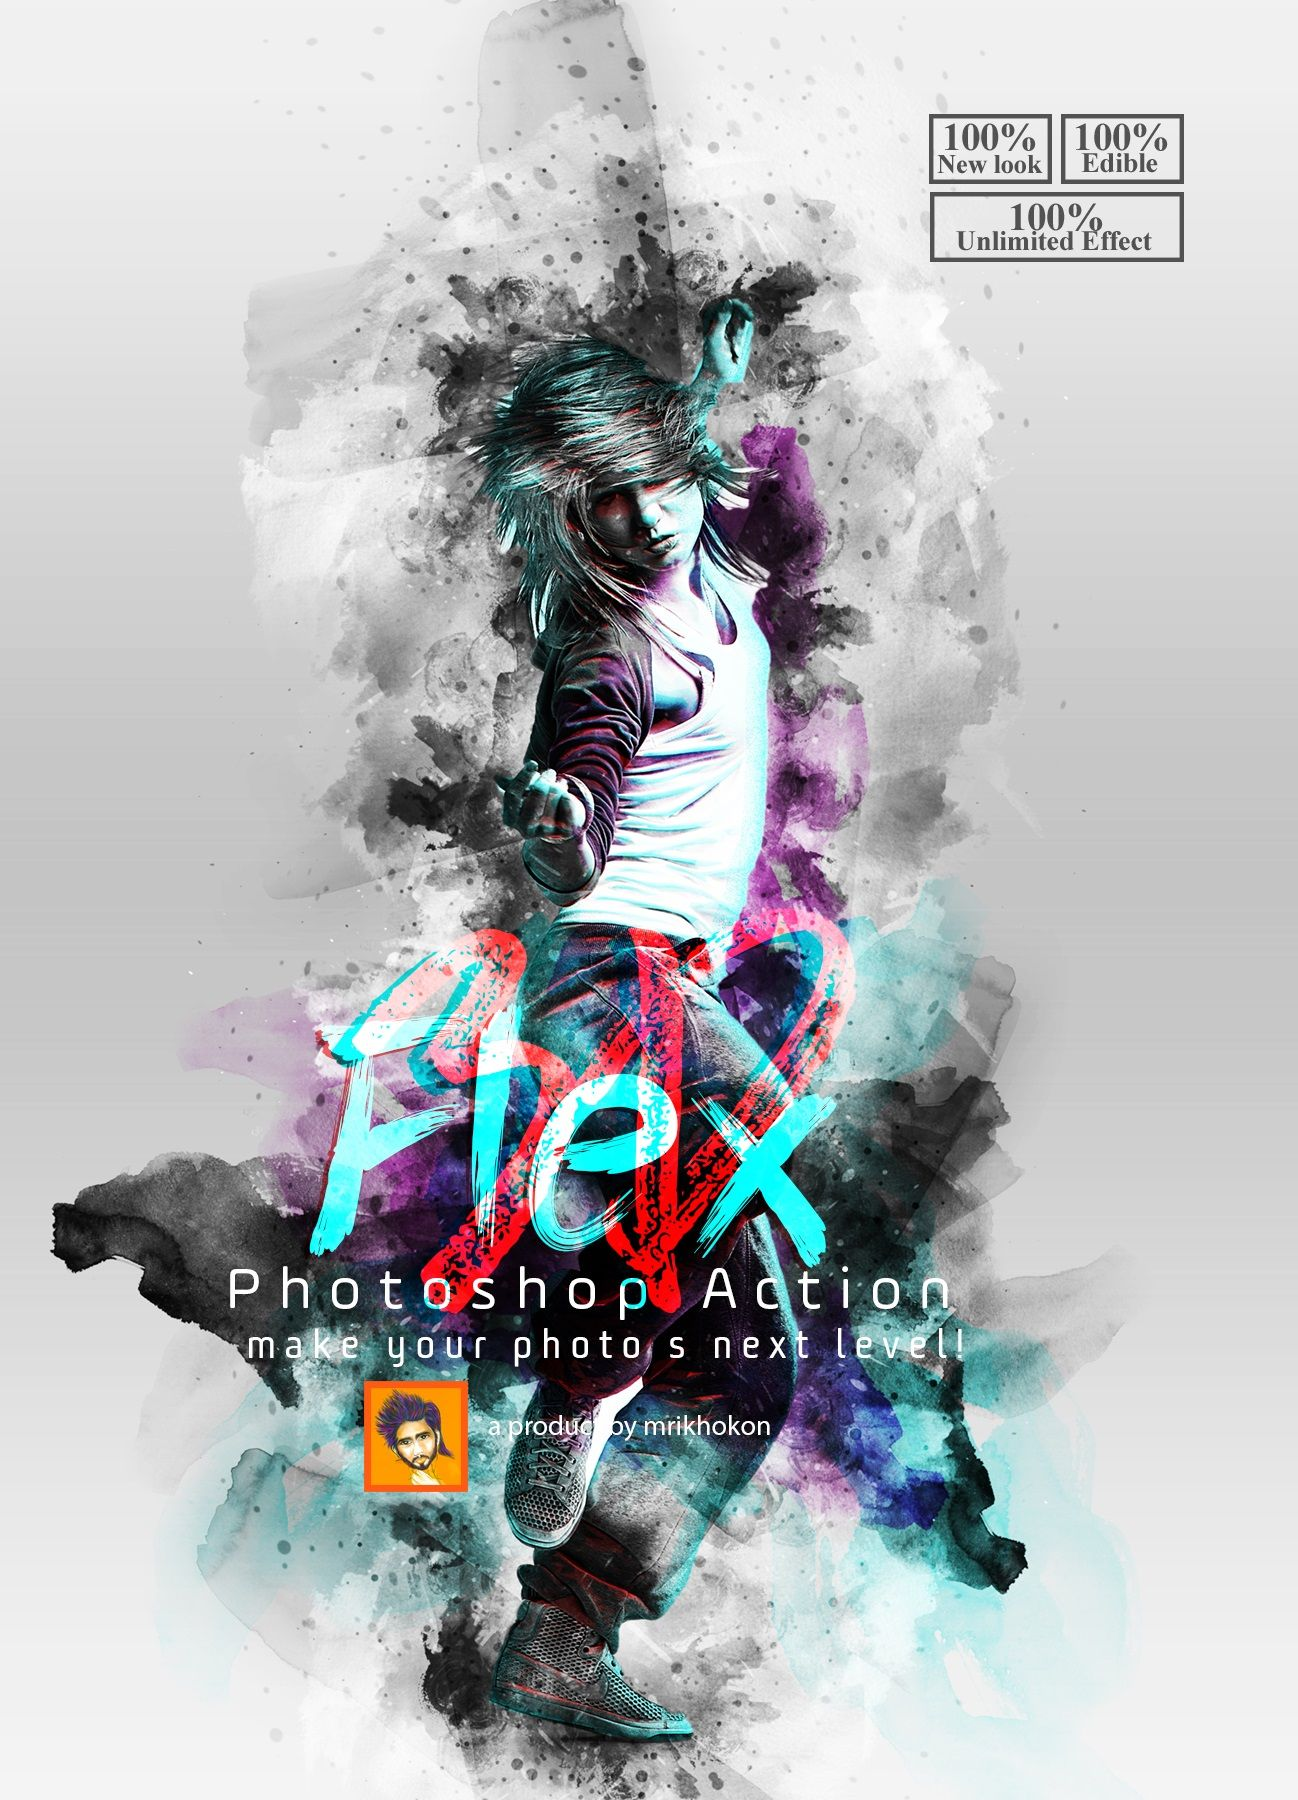 3D Flex Action (With images) actions